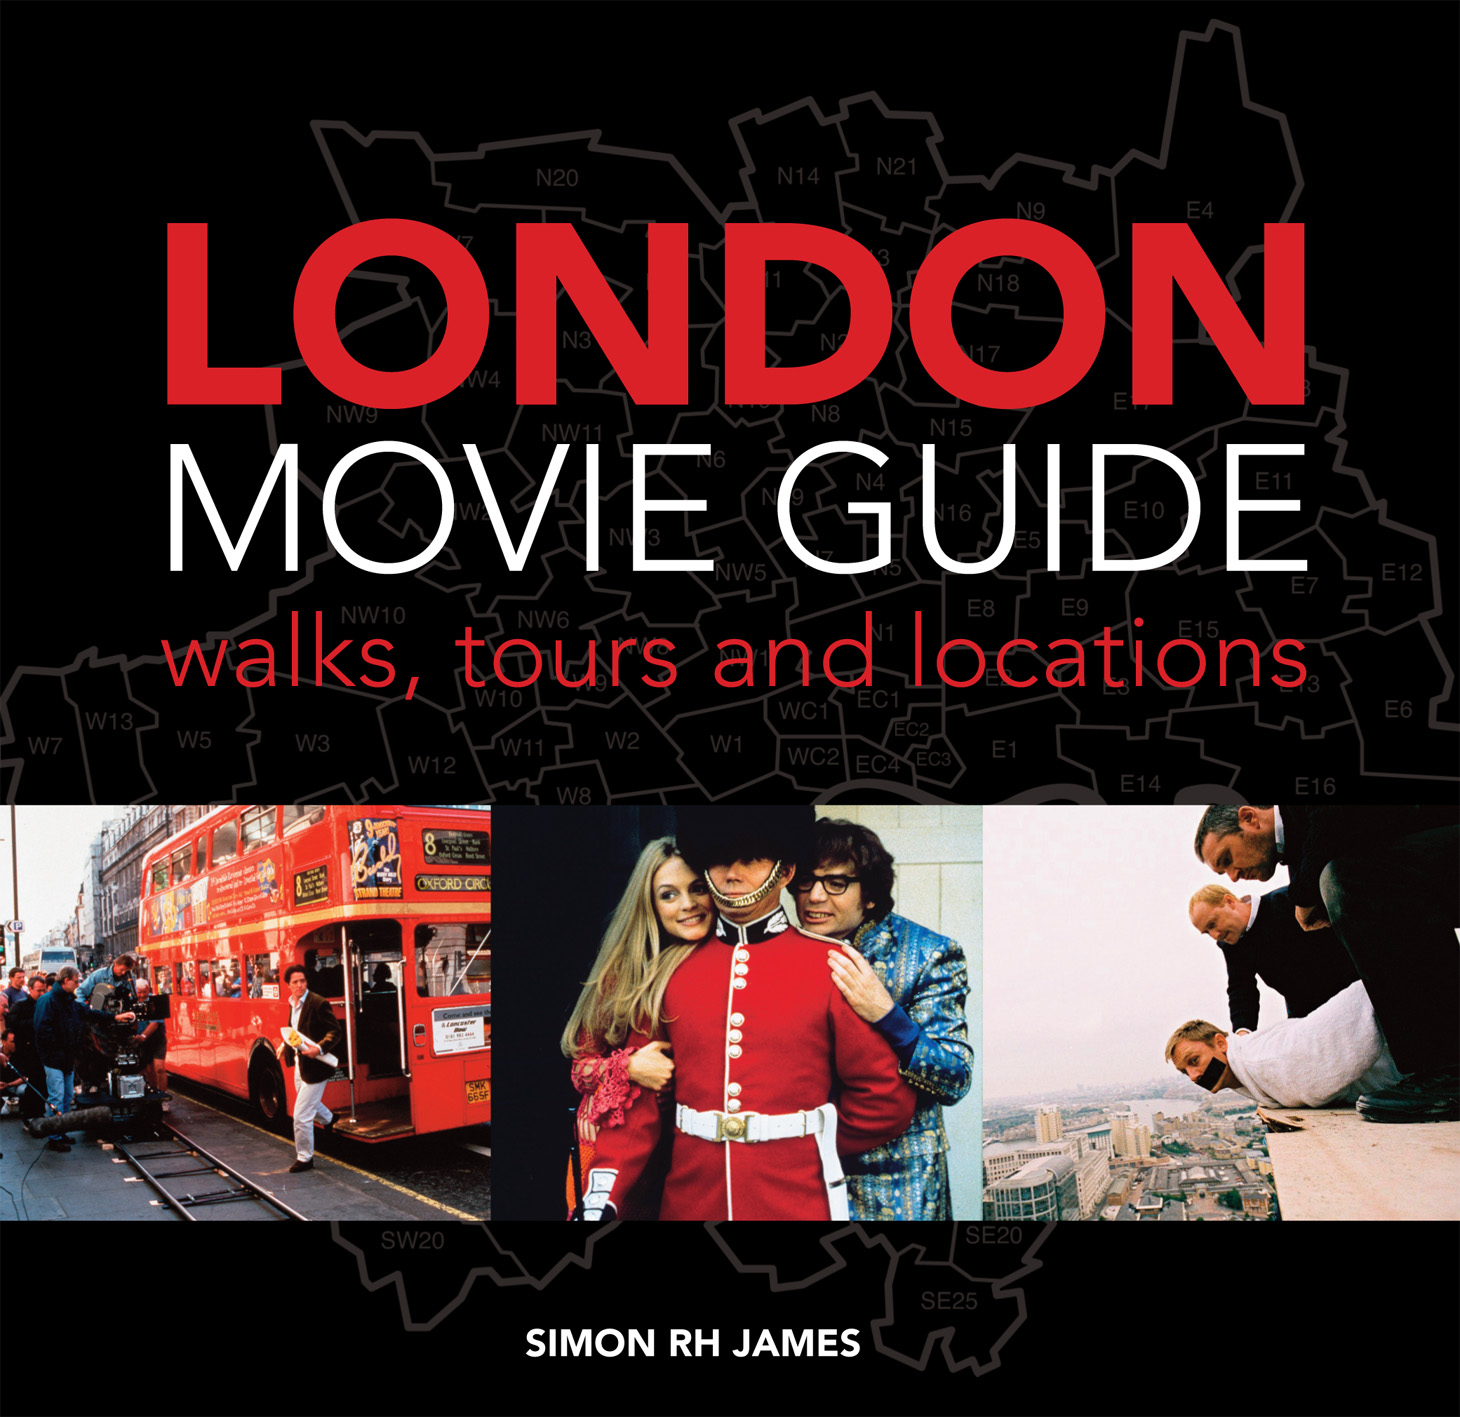 London Movie Guide